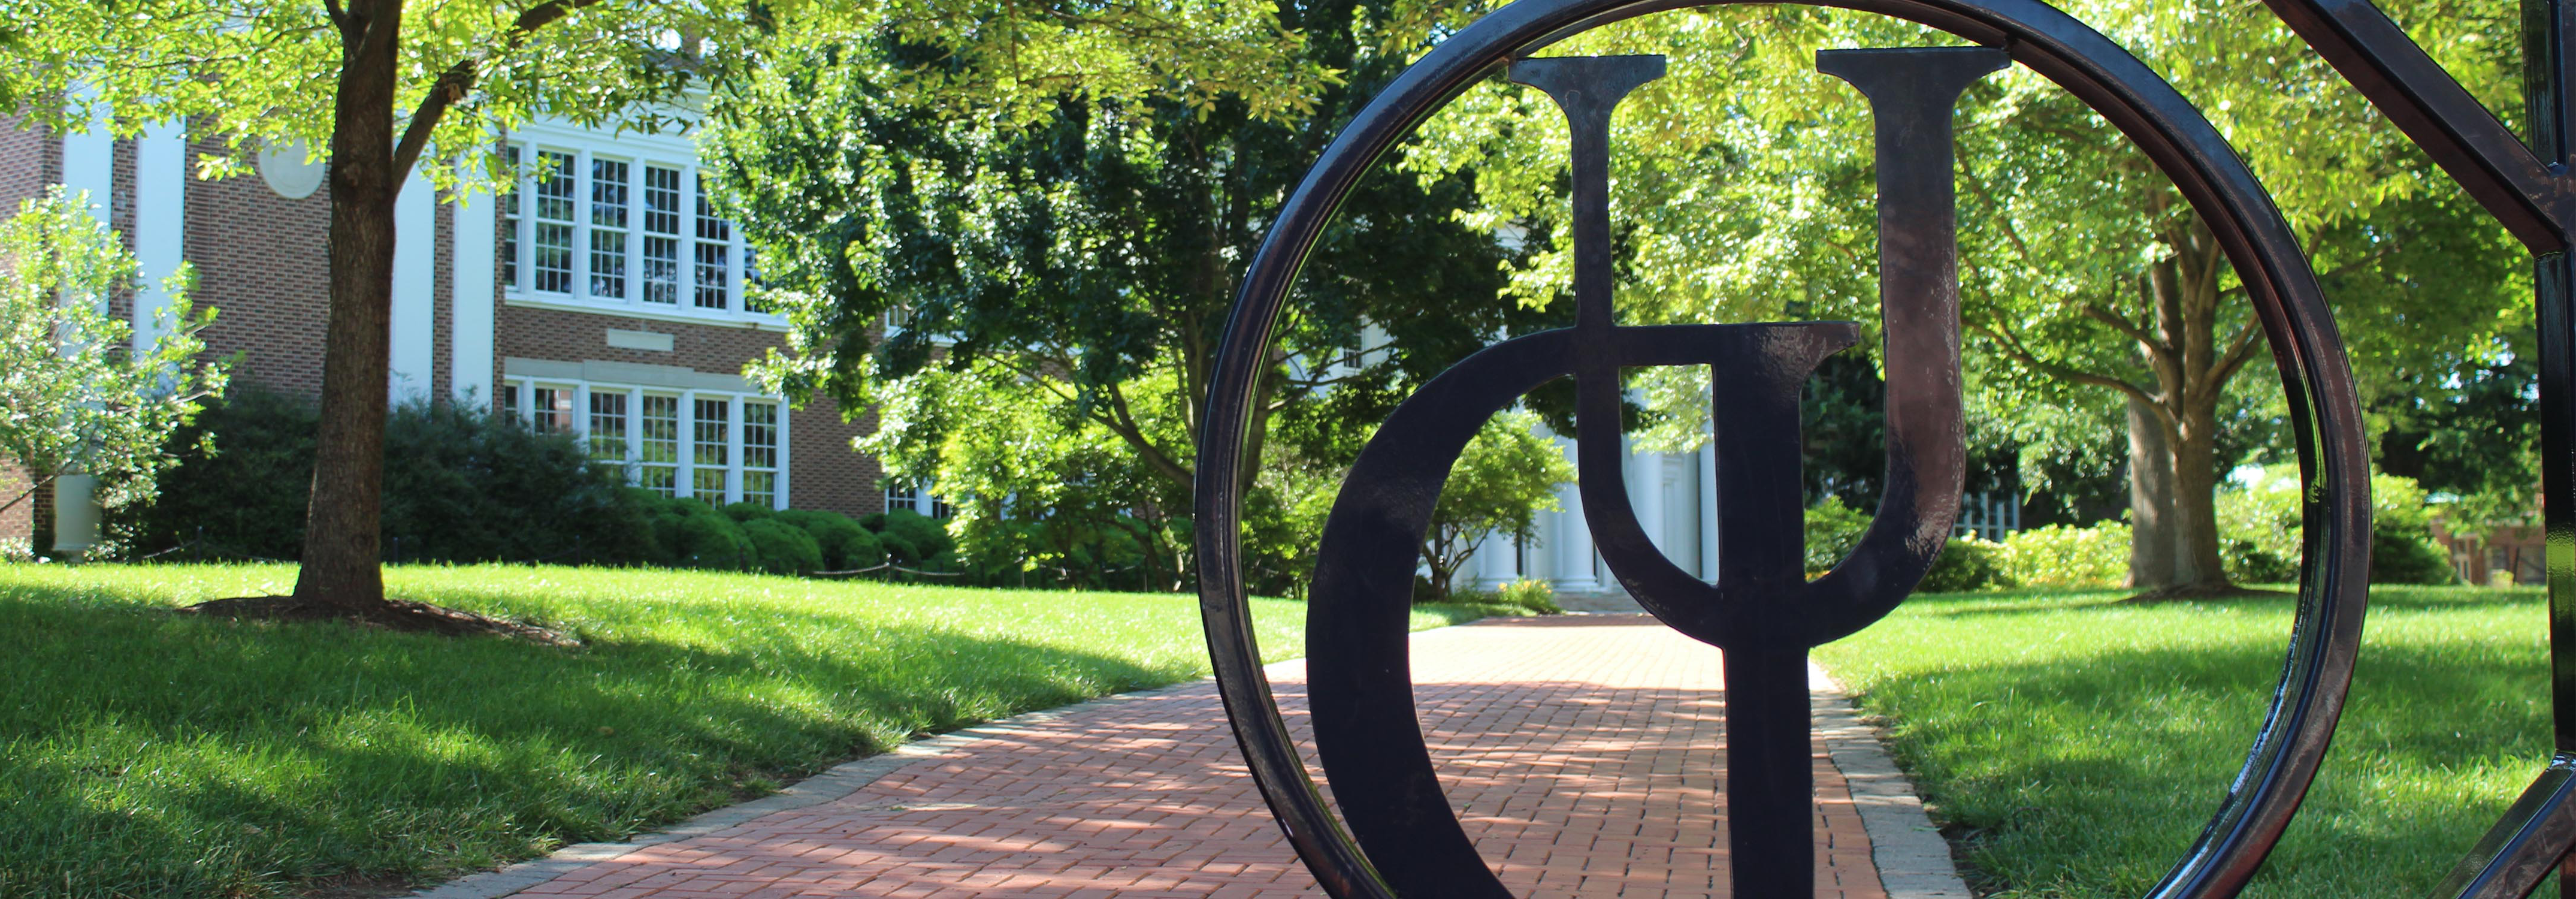 Up close view of a black fence with the monogram logo of UD built into it. Blurry trees and brick path are in the background.